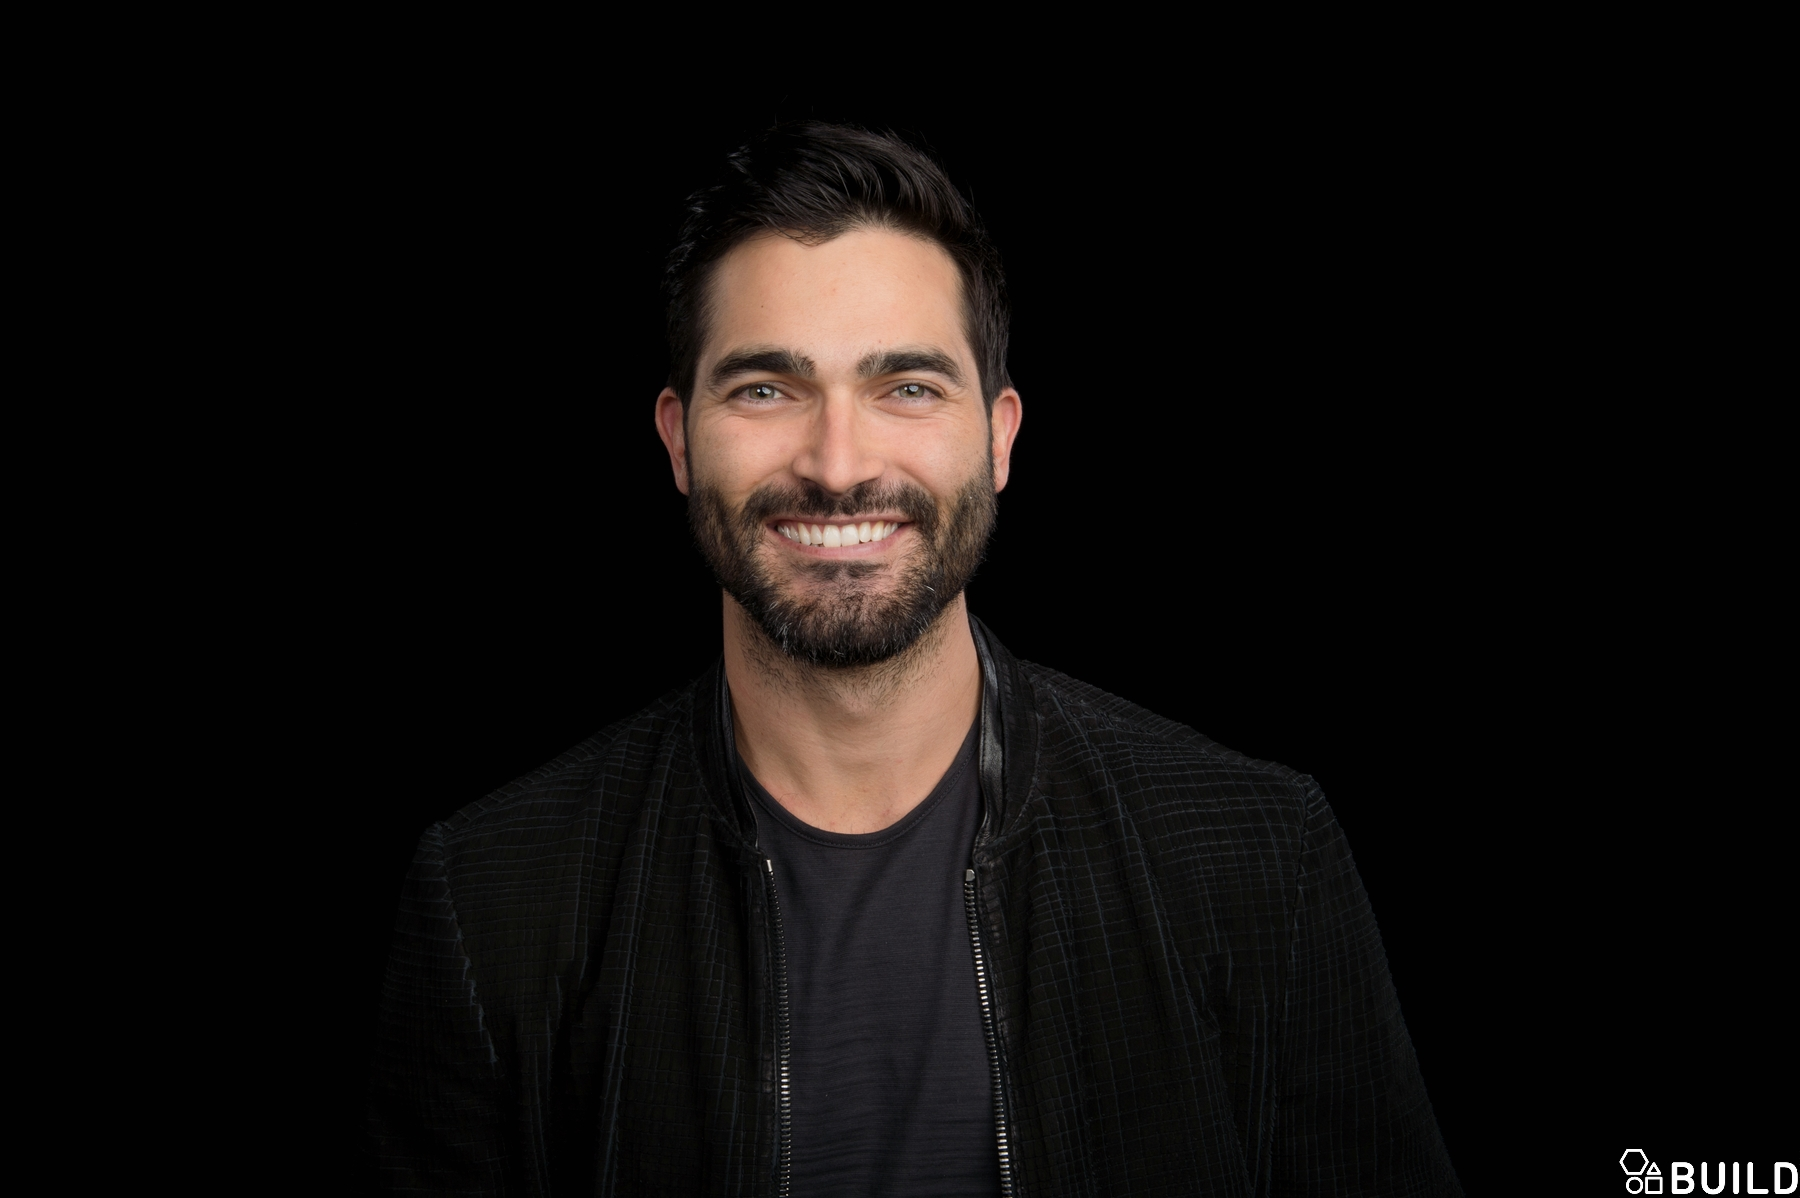 Tyler Hoechlin visits AOL Hq for Build on October 7, 2016 in New York. Photos by Noam Galai